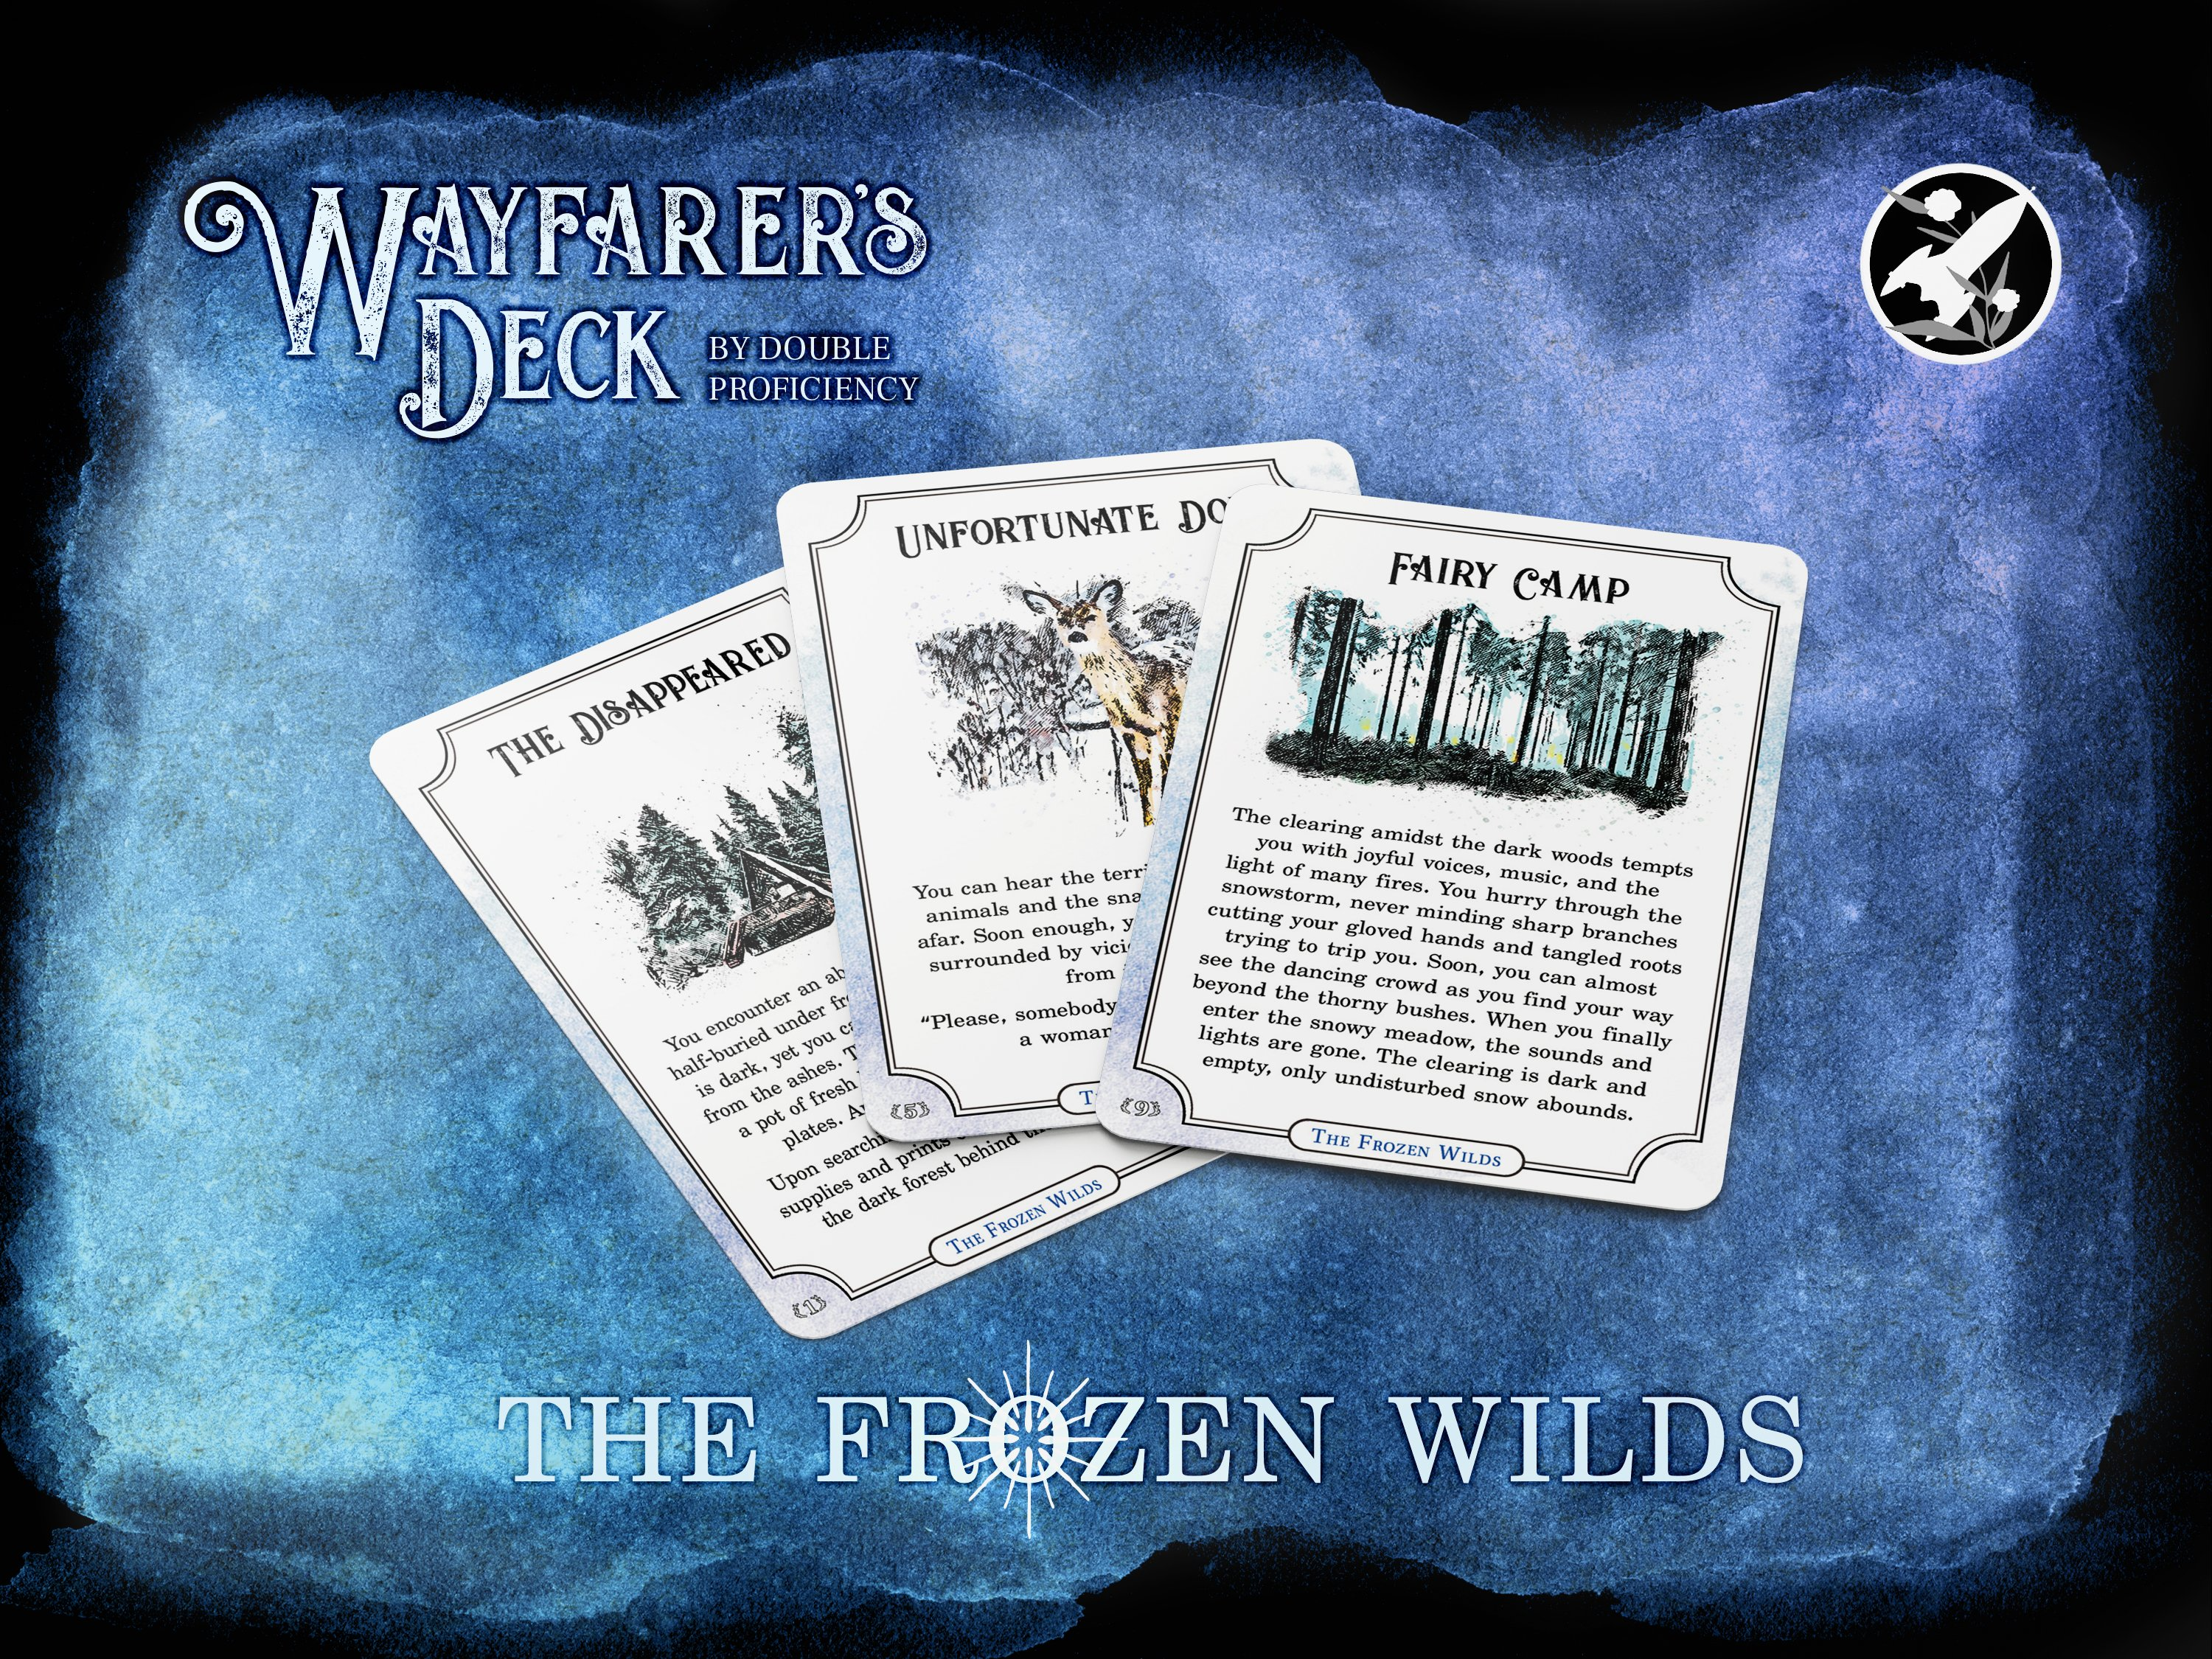 Three cards from the deck: The Disappeared, Unfortunate Doe, and Fairy Camp